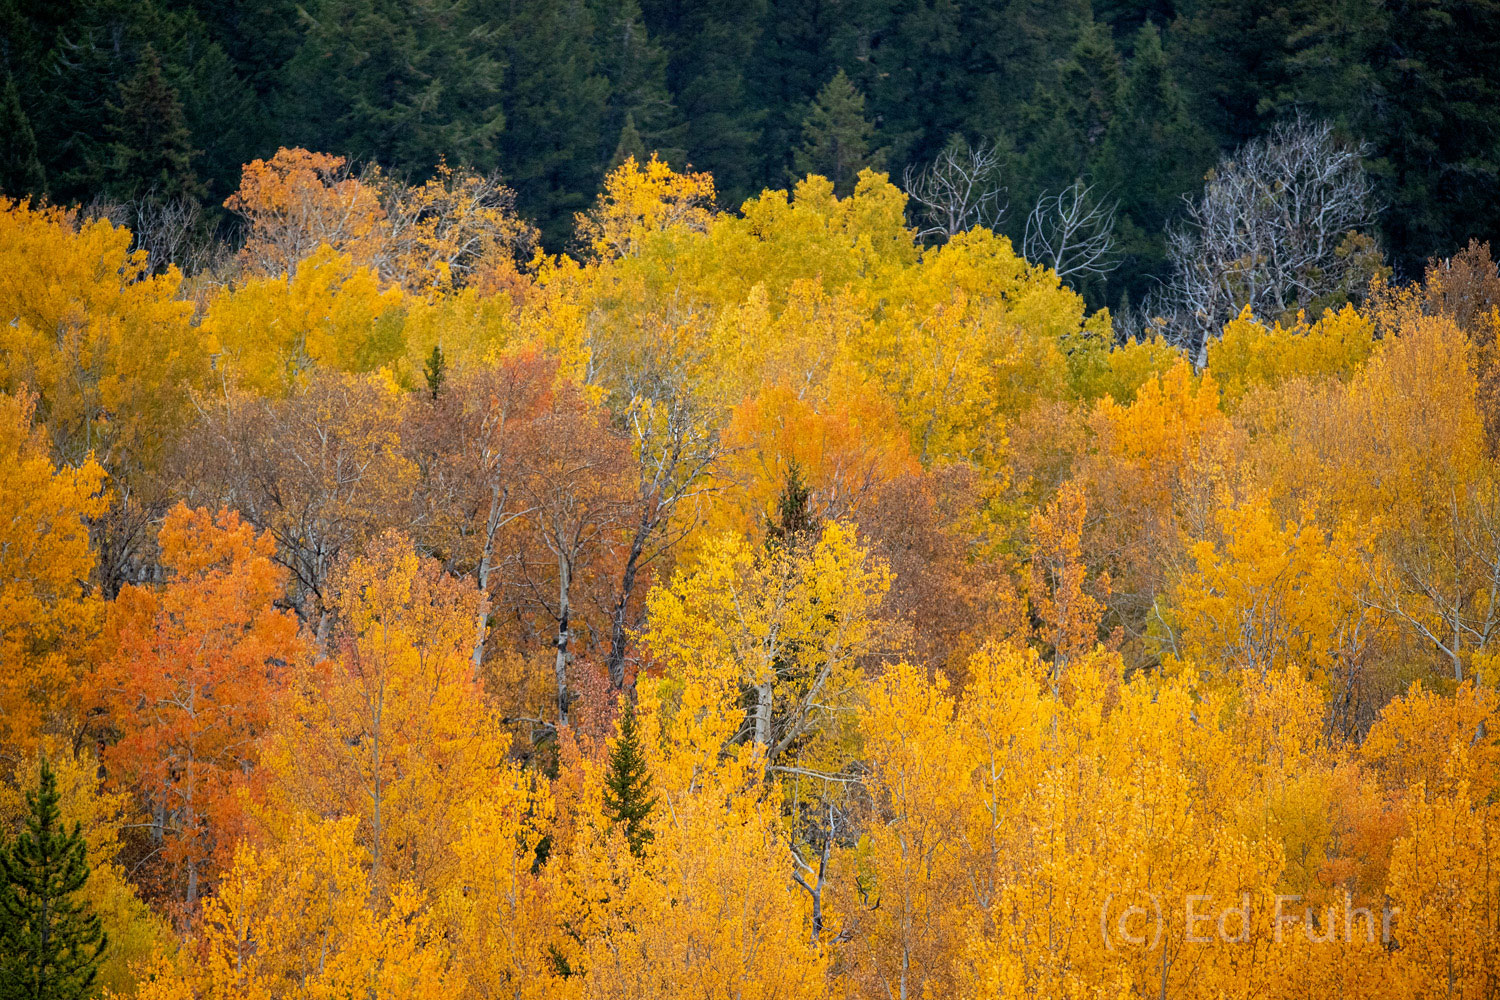 A colorful mix of aspen show off their autumn foliage along Pacific Creed Road.